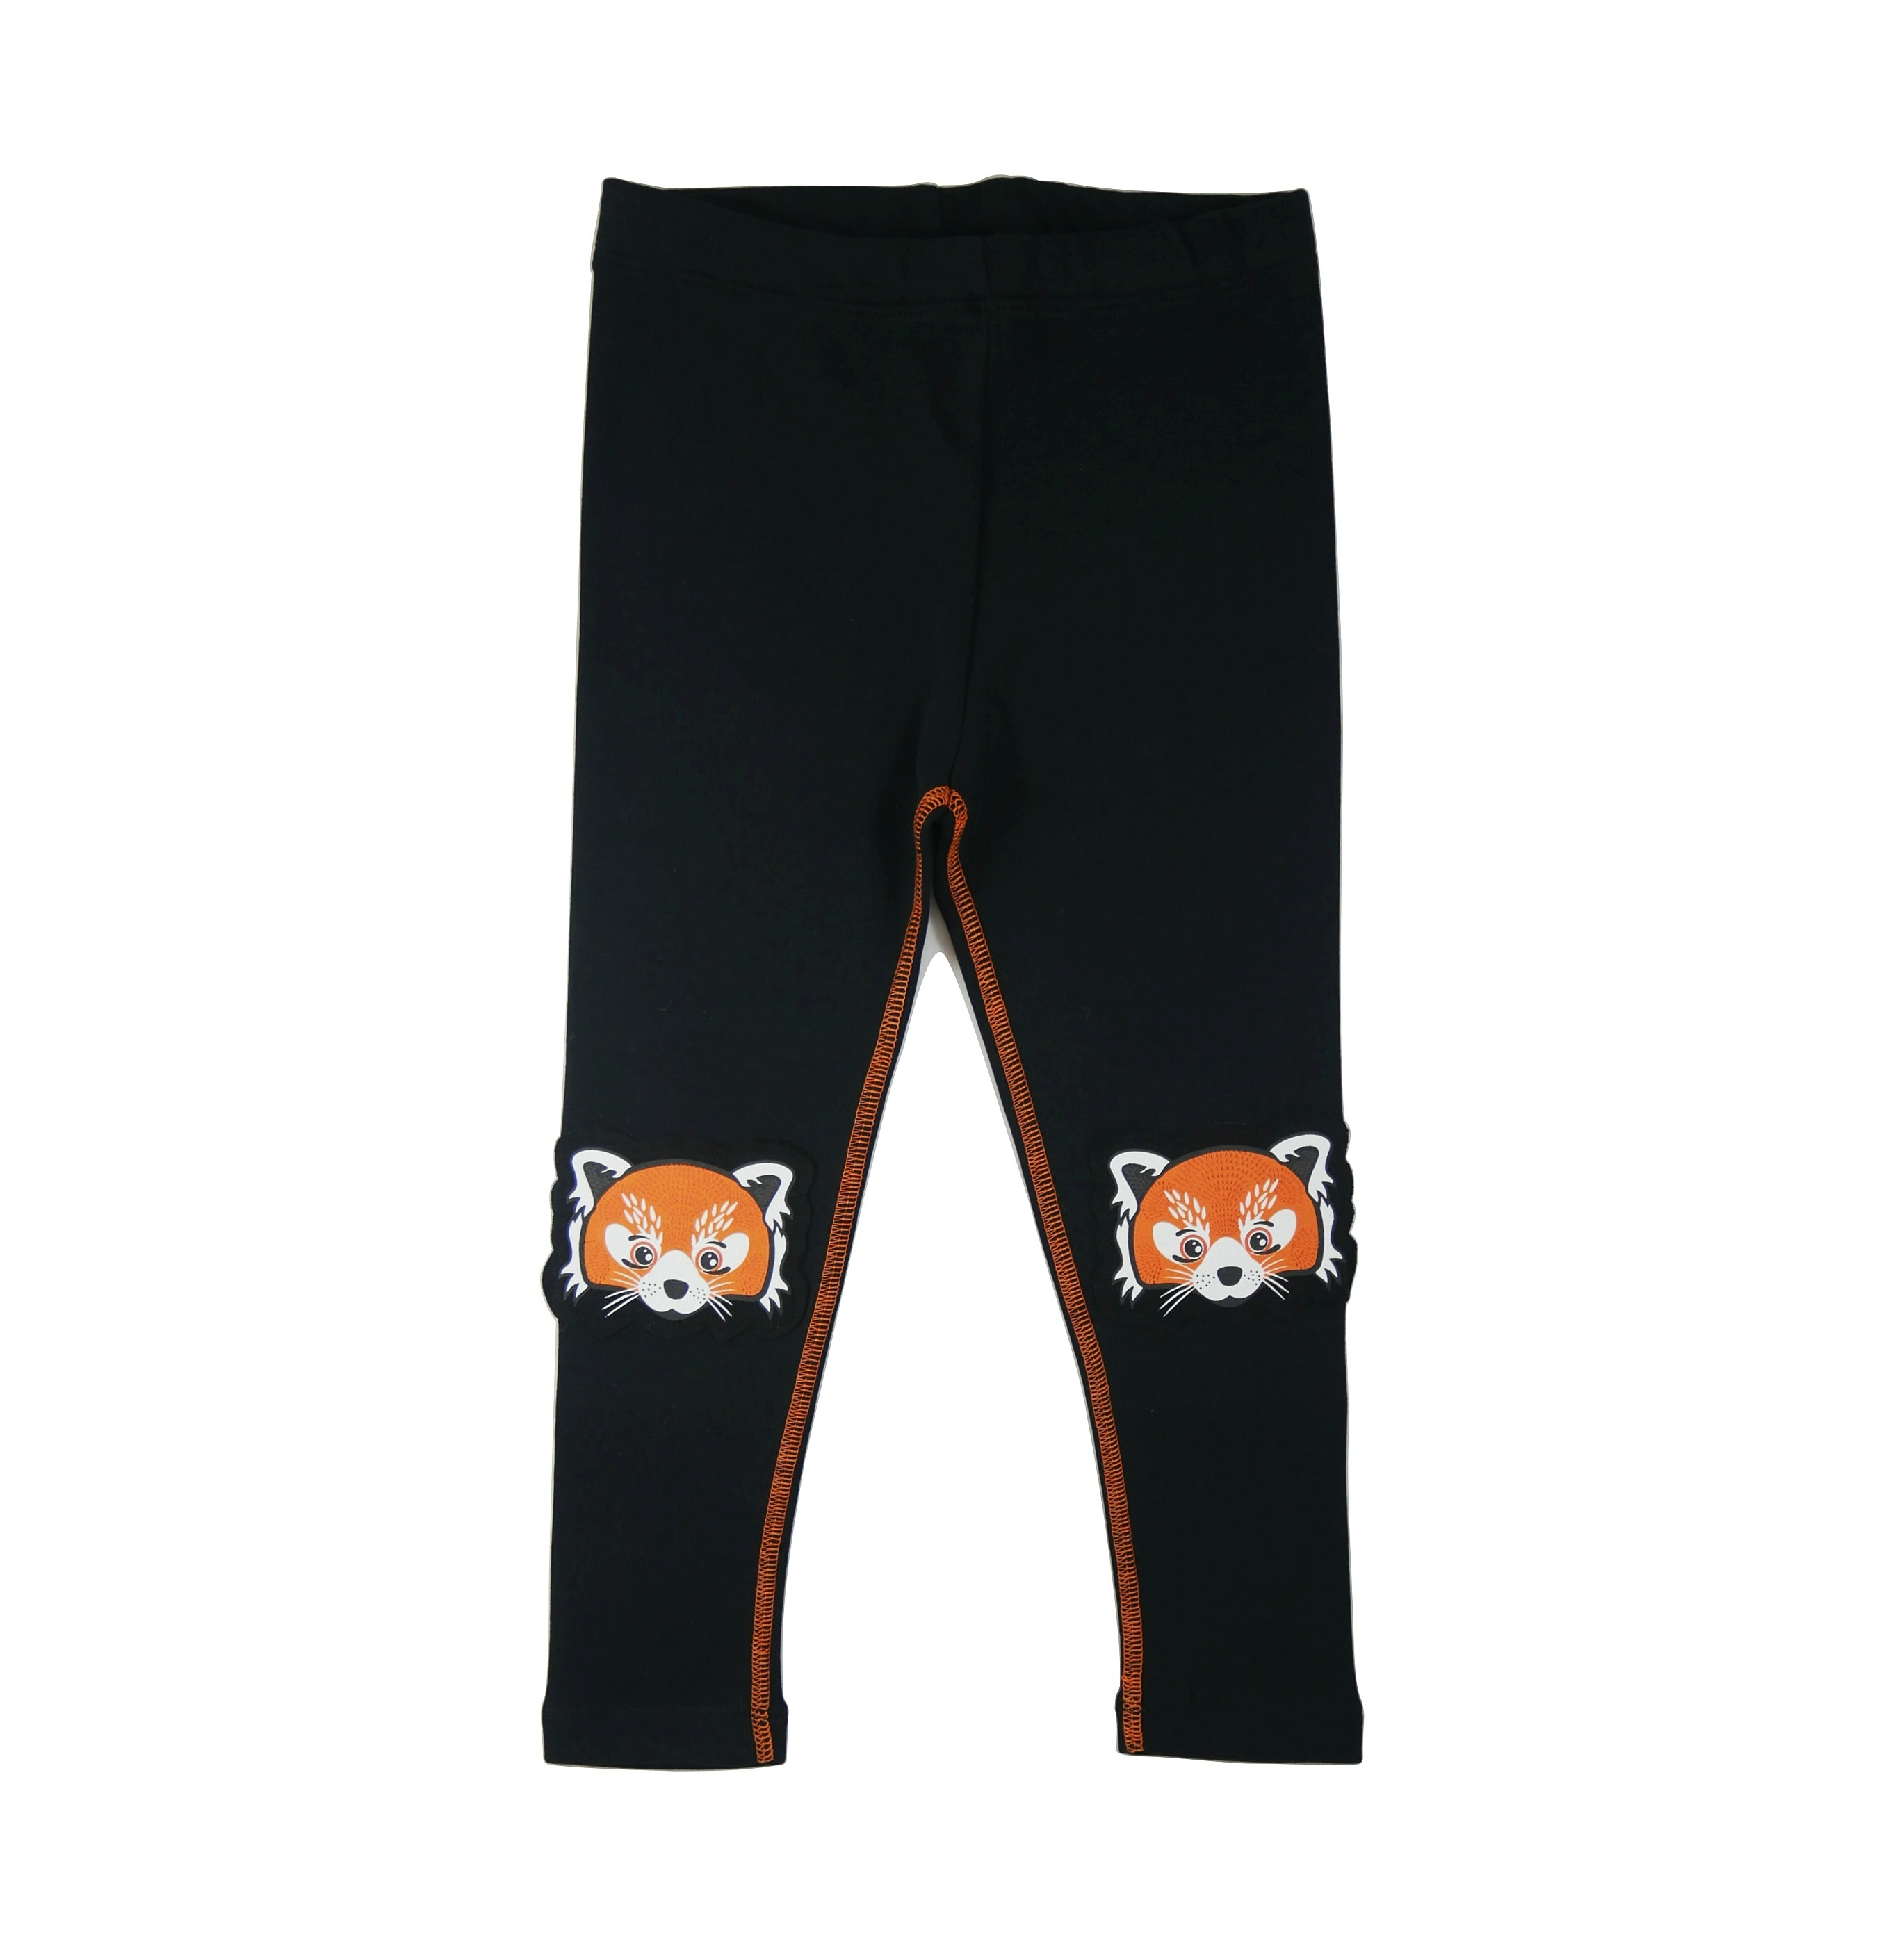 19SSLPK Leggings Red Panda Knees